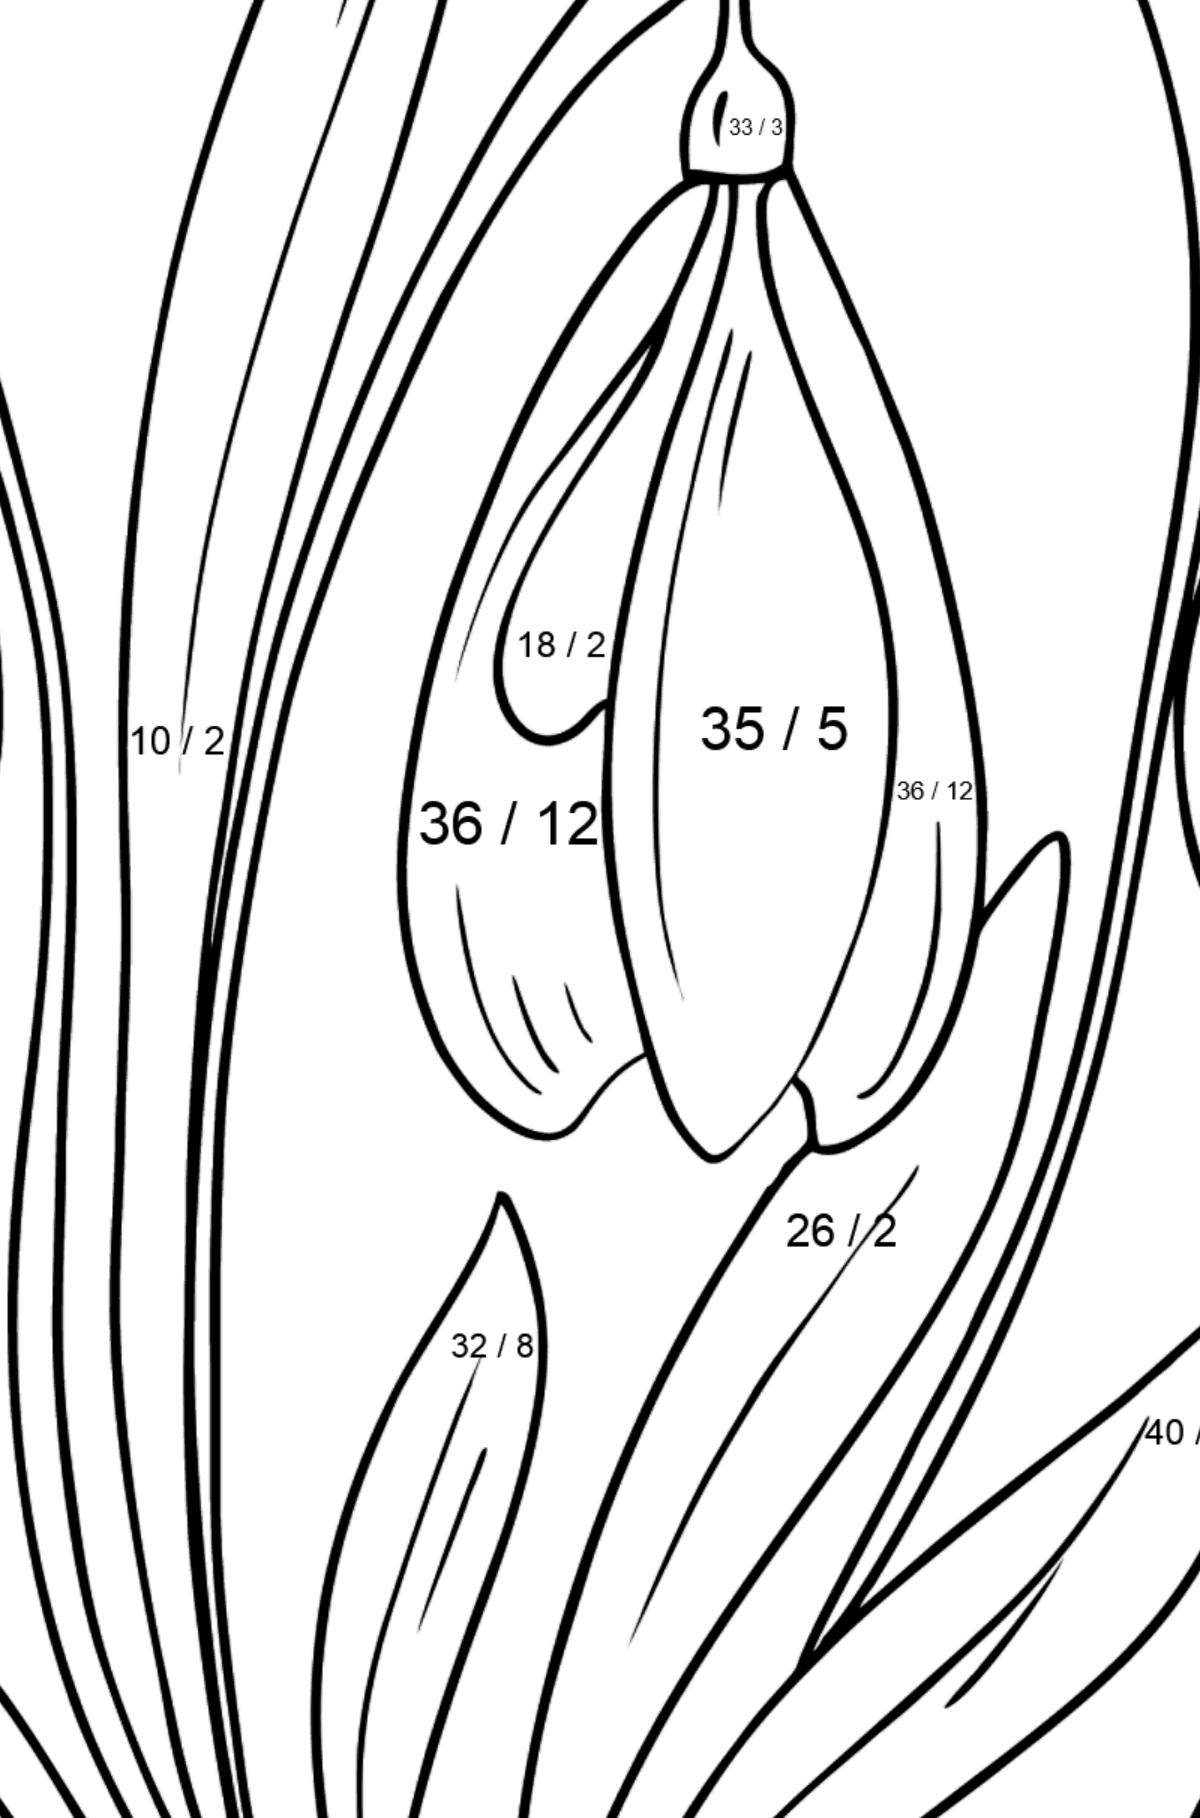 Snowdrops Coloring Page - Math Coloring - Division for Kids